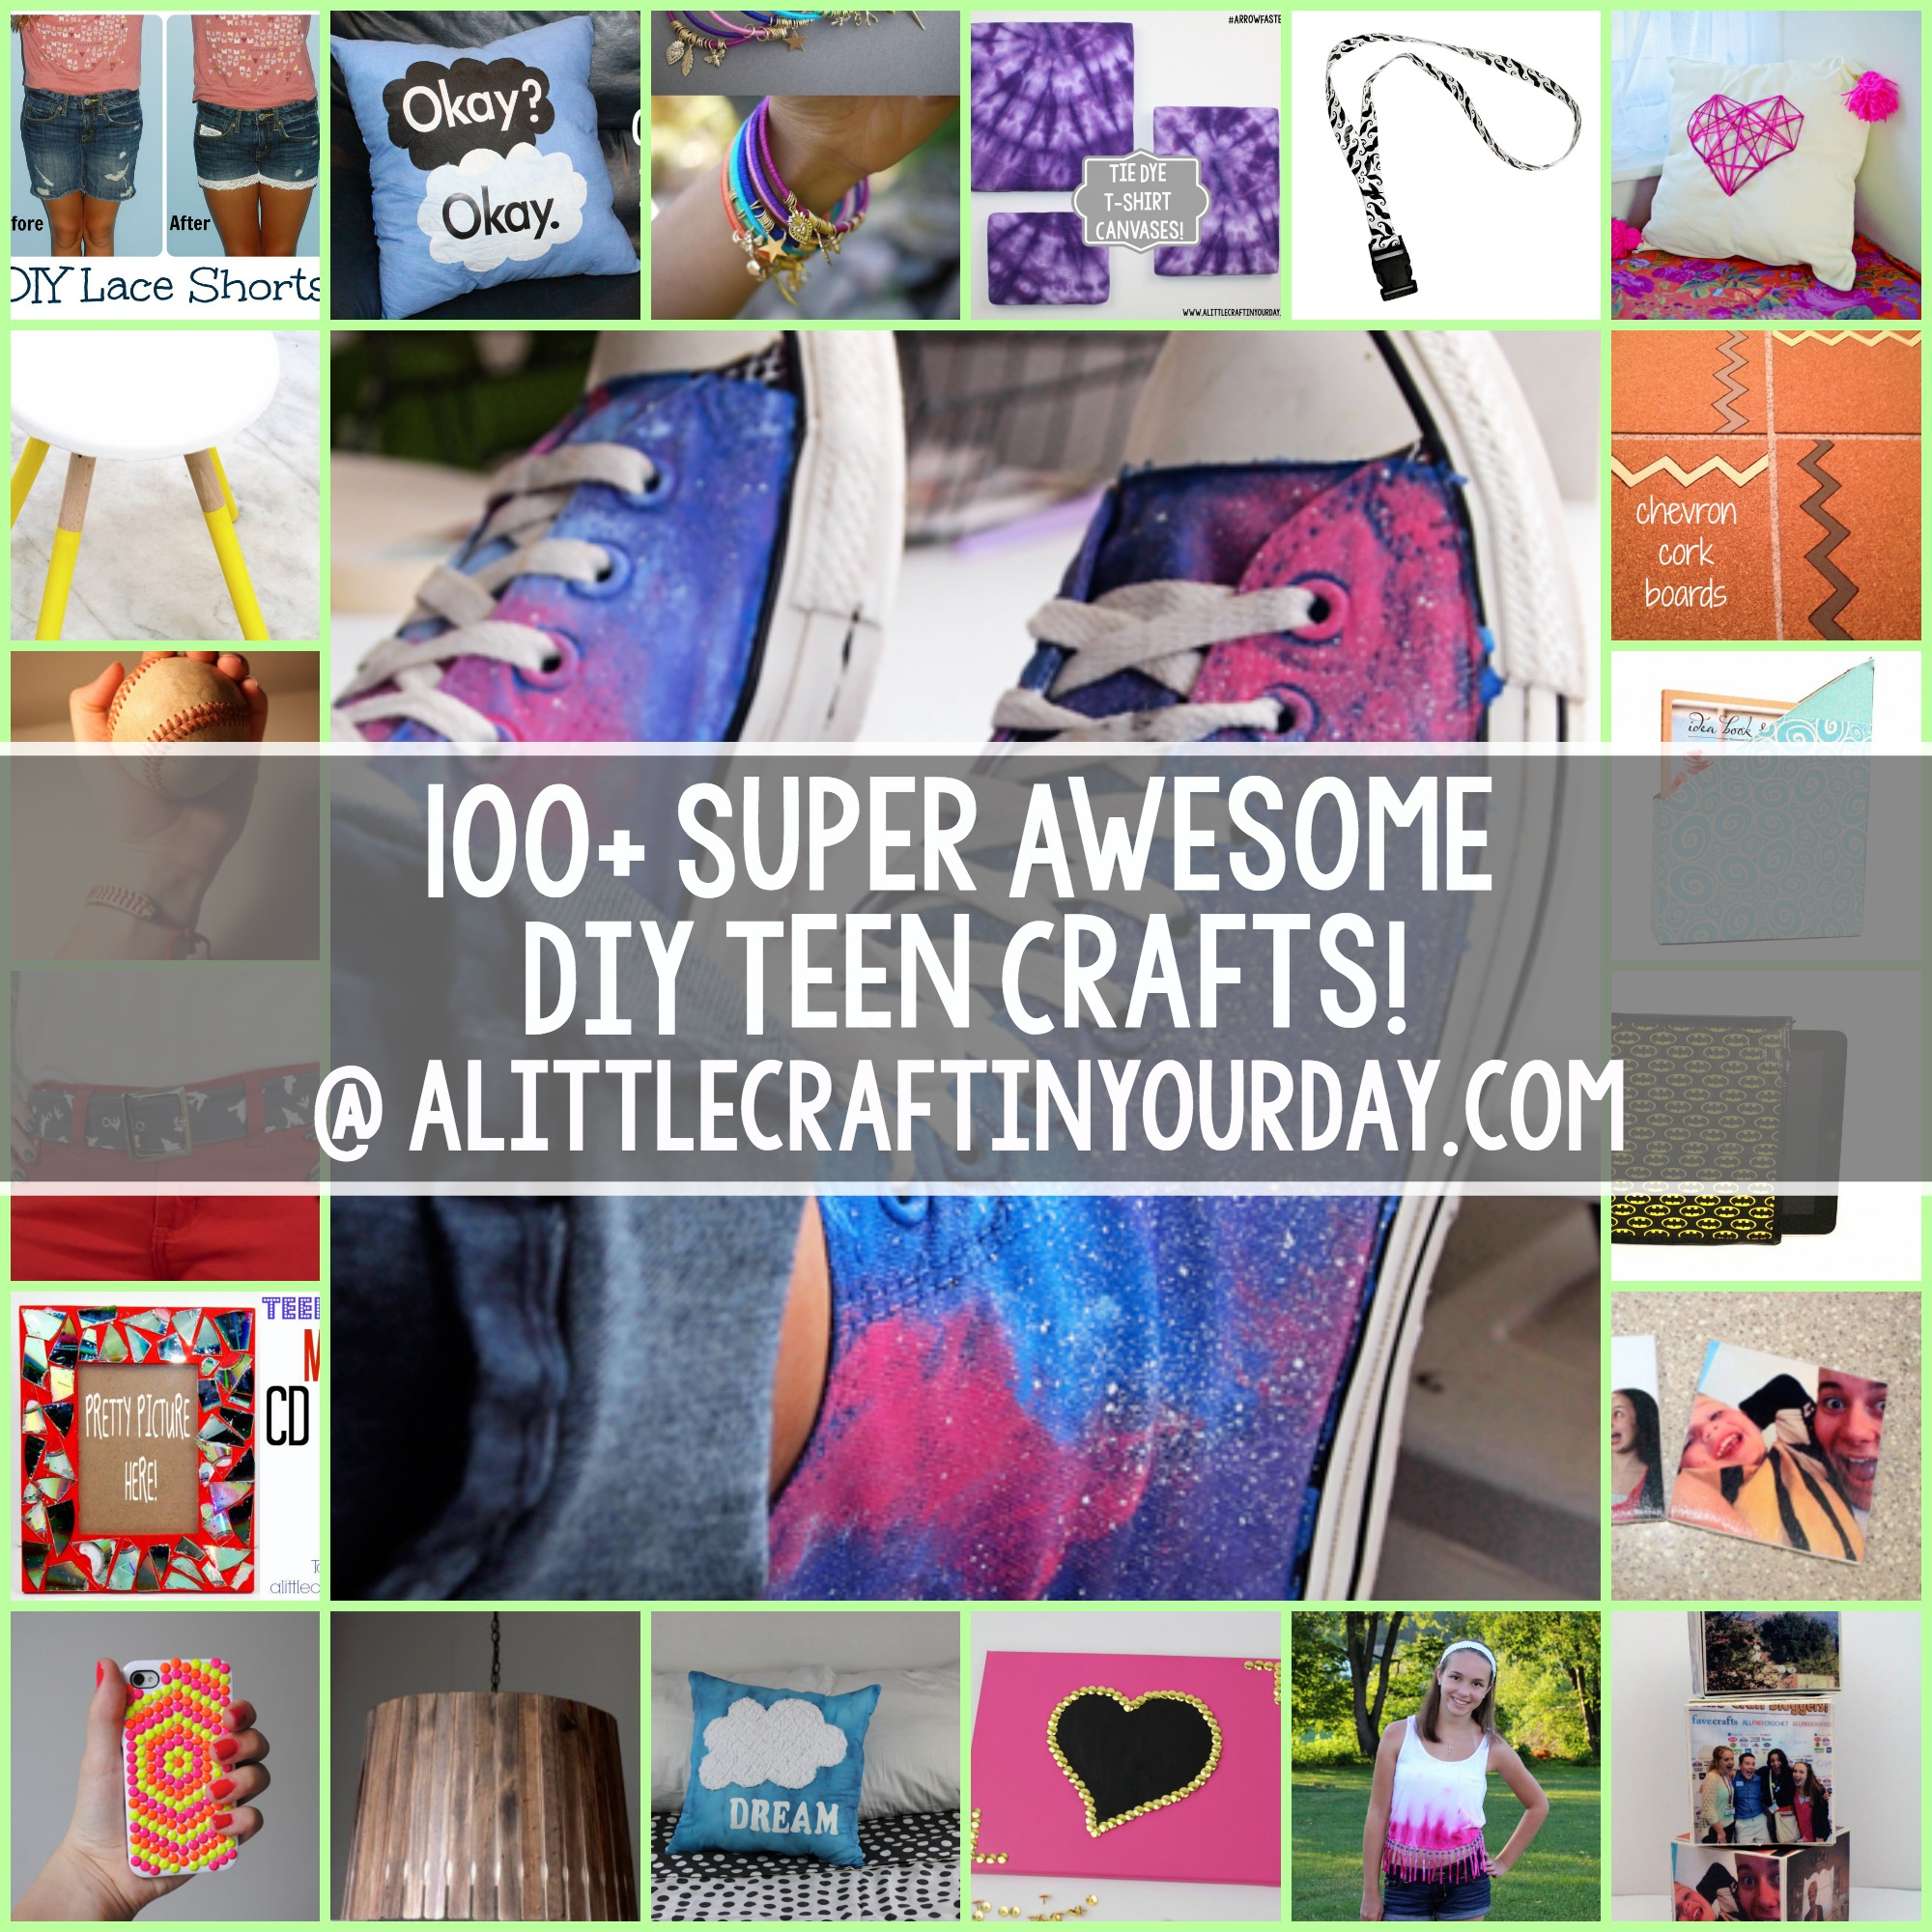 100 Super Awesome Crafts For Teens A Little Craft In Your Day